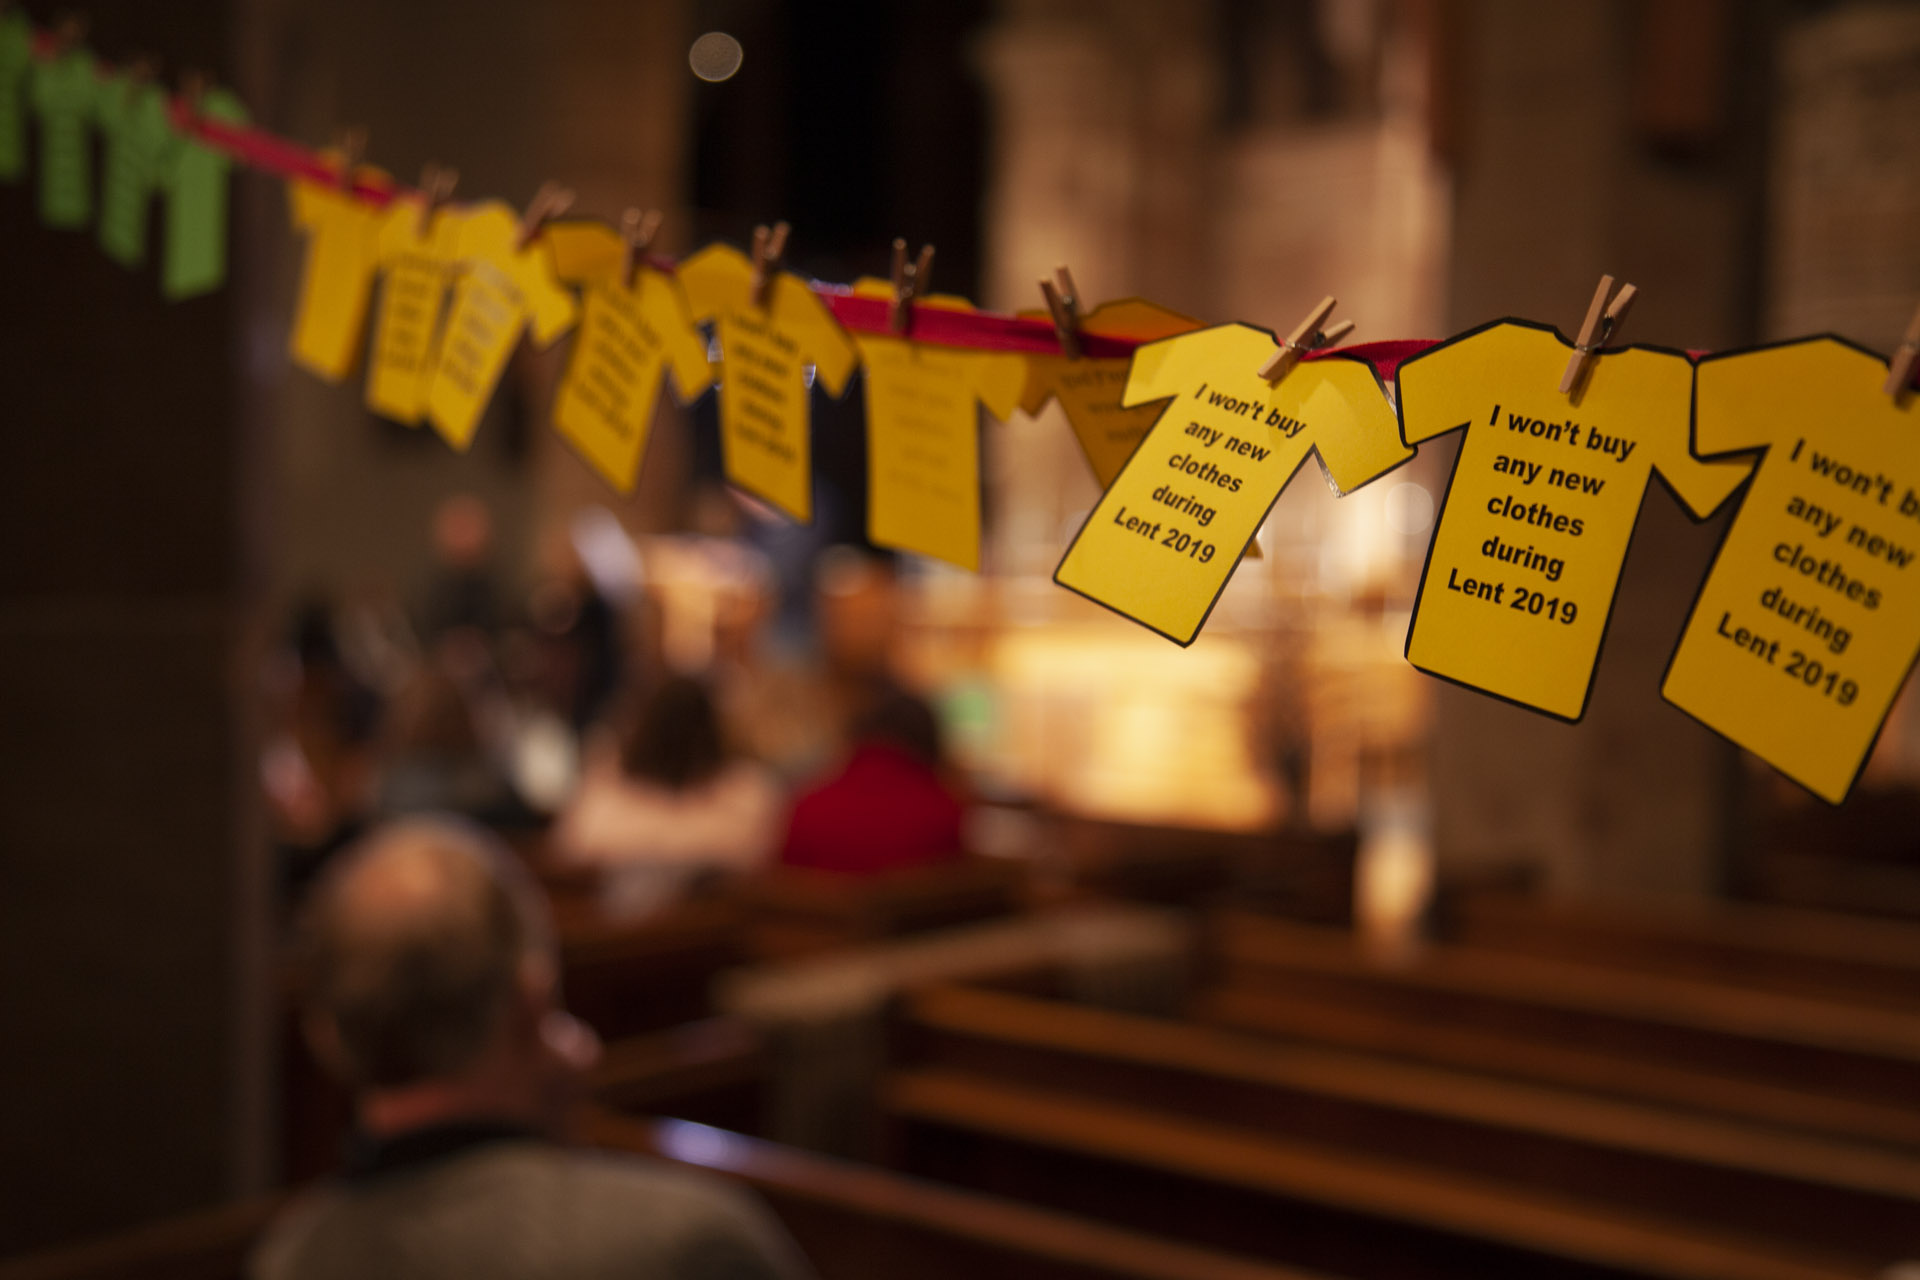 The pledges were arranged around the church on washing lines